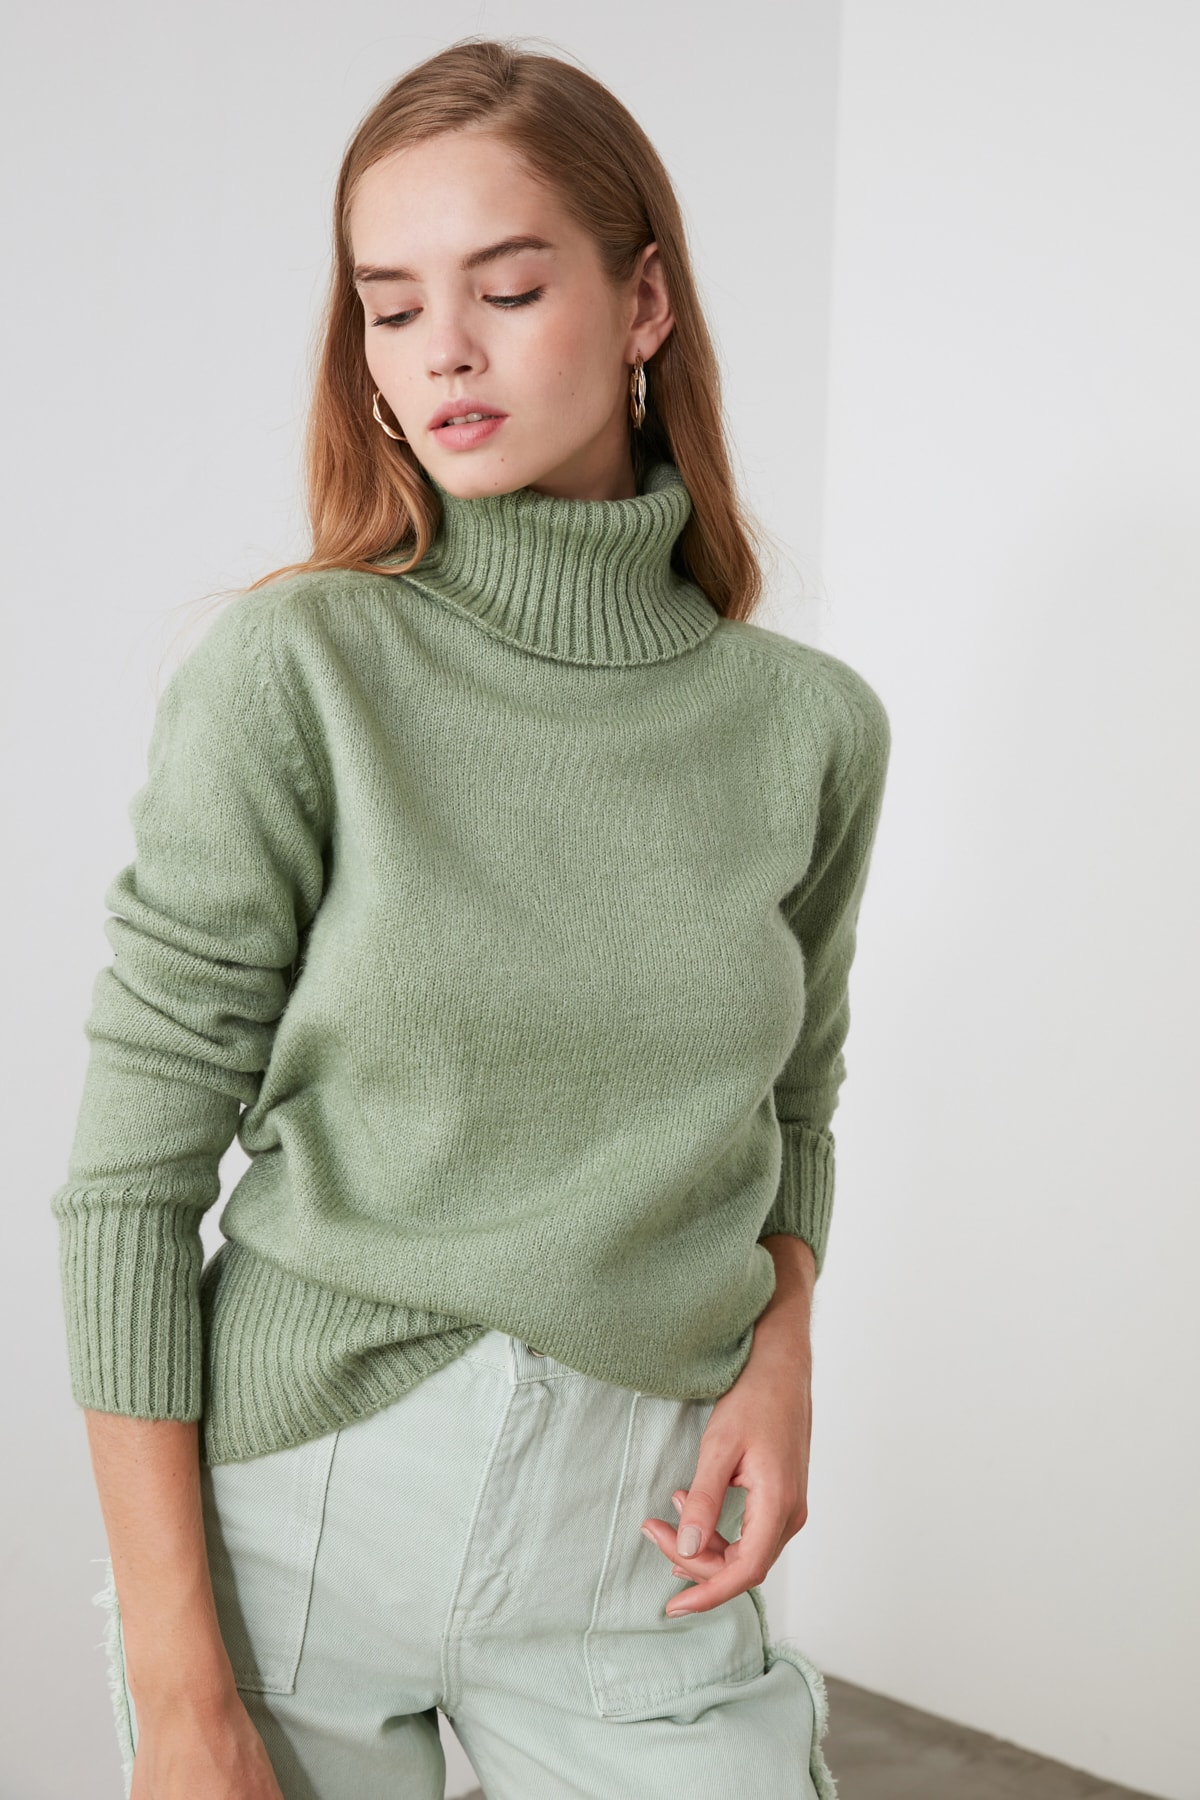 Trendyol Turtleneck Knitwear Sweater TWOAW21KZ1343